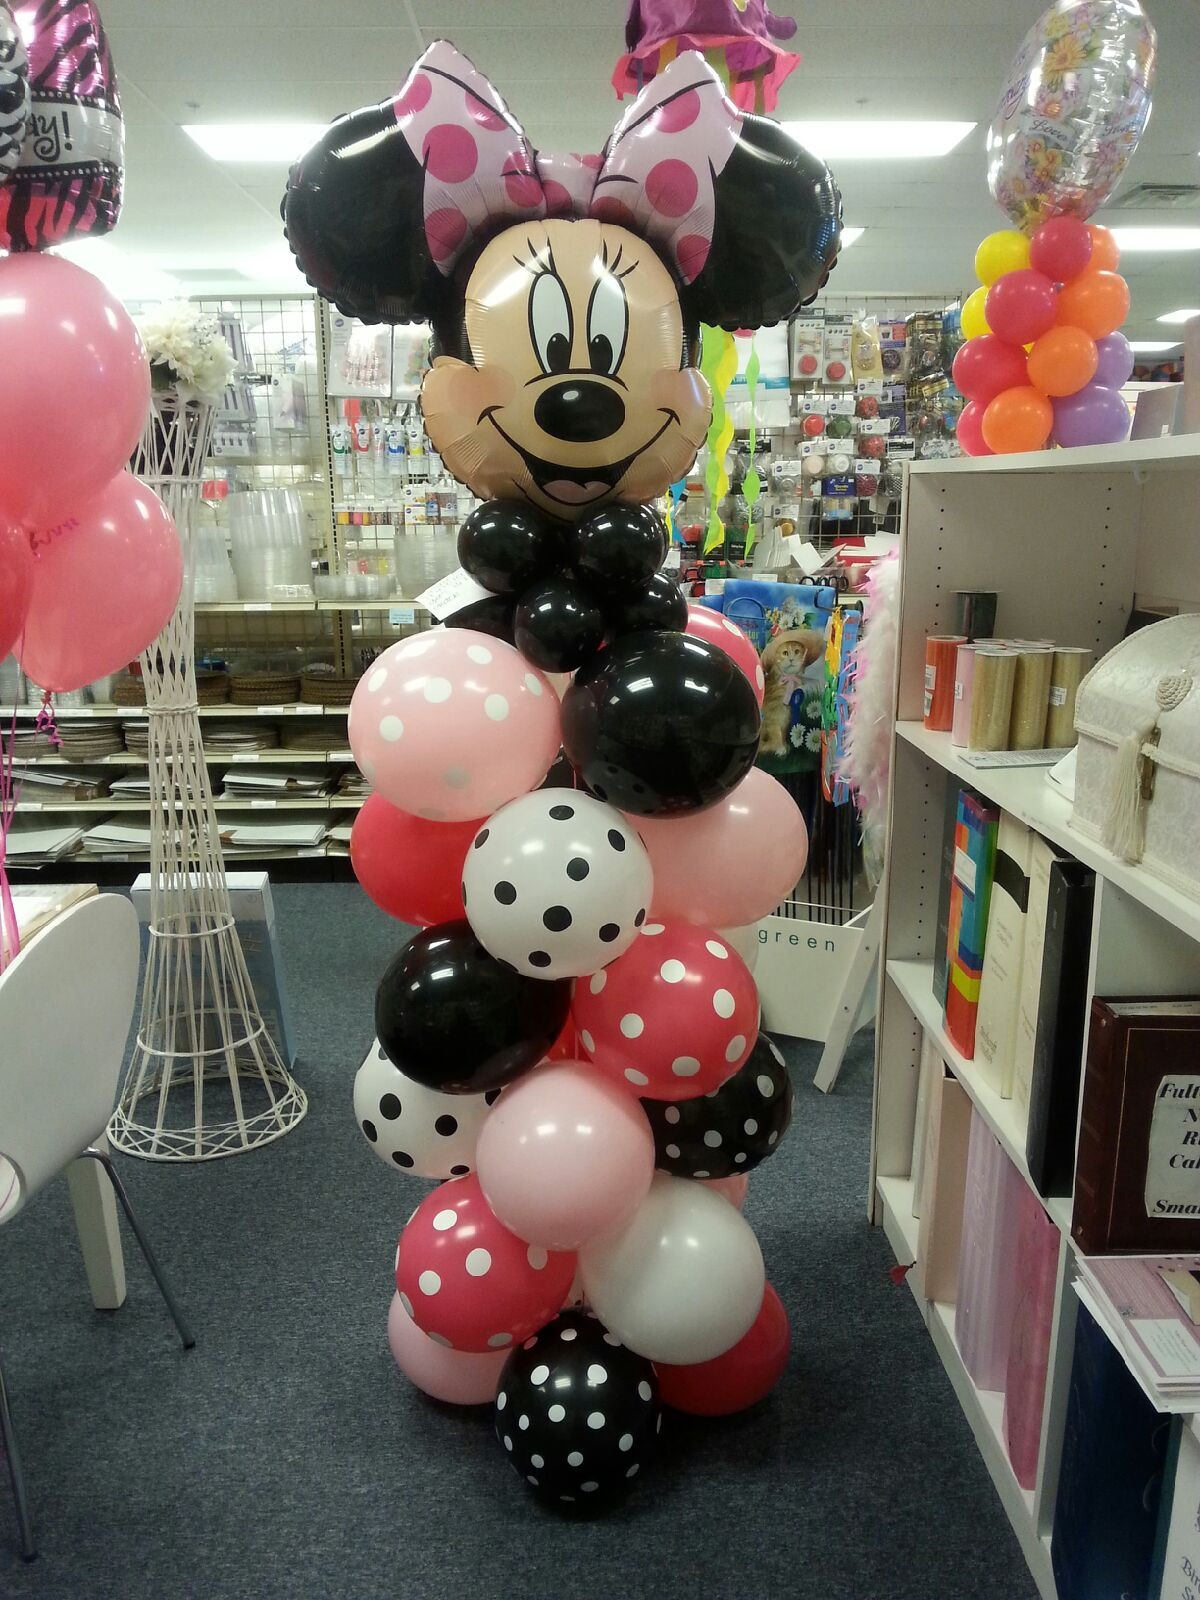 Fulton Paper & Party Supplies image 15